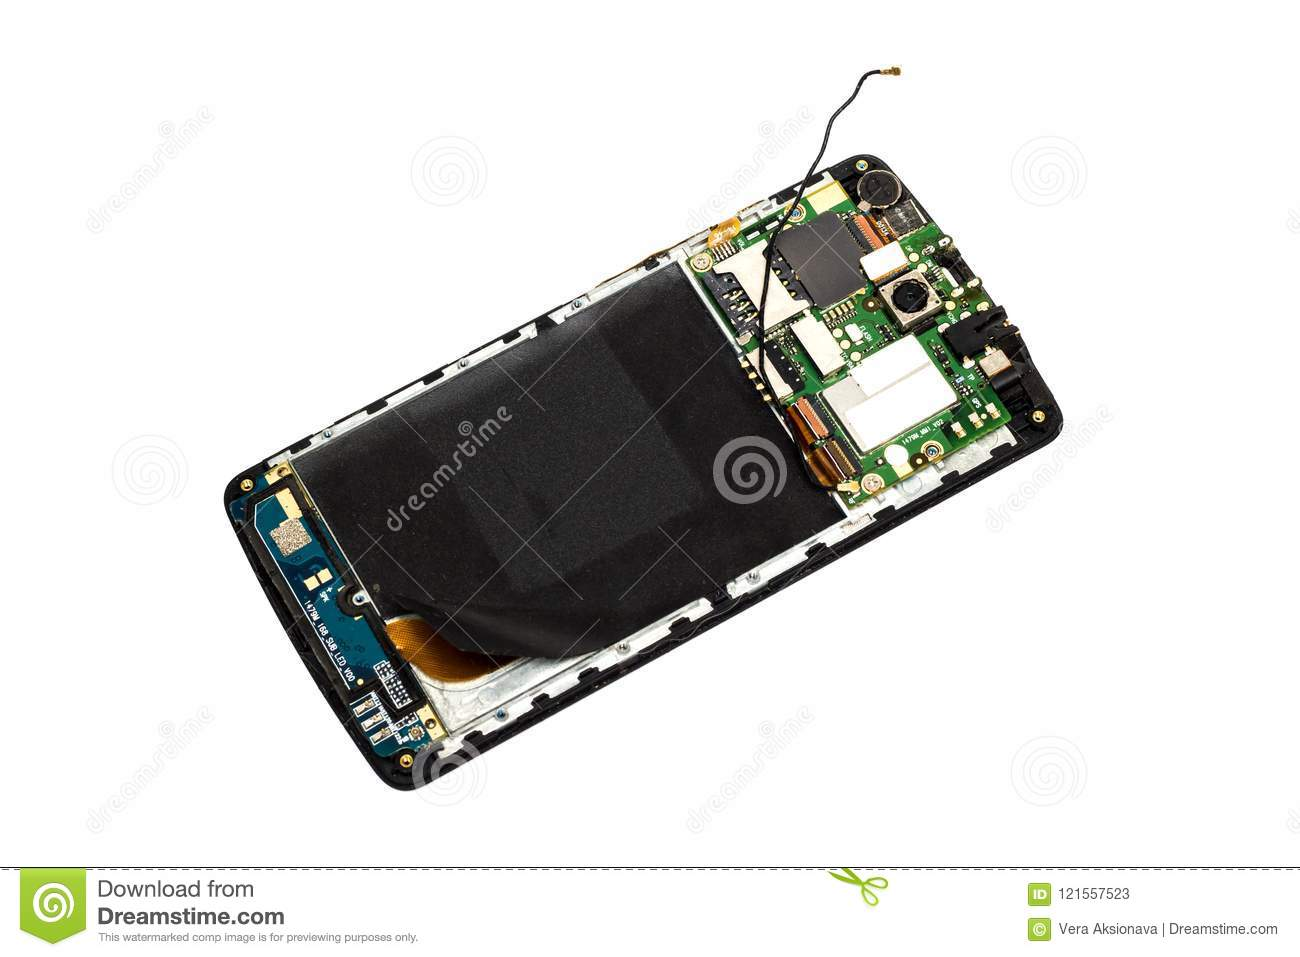 Broken mobile phone on a white background